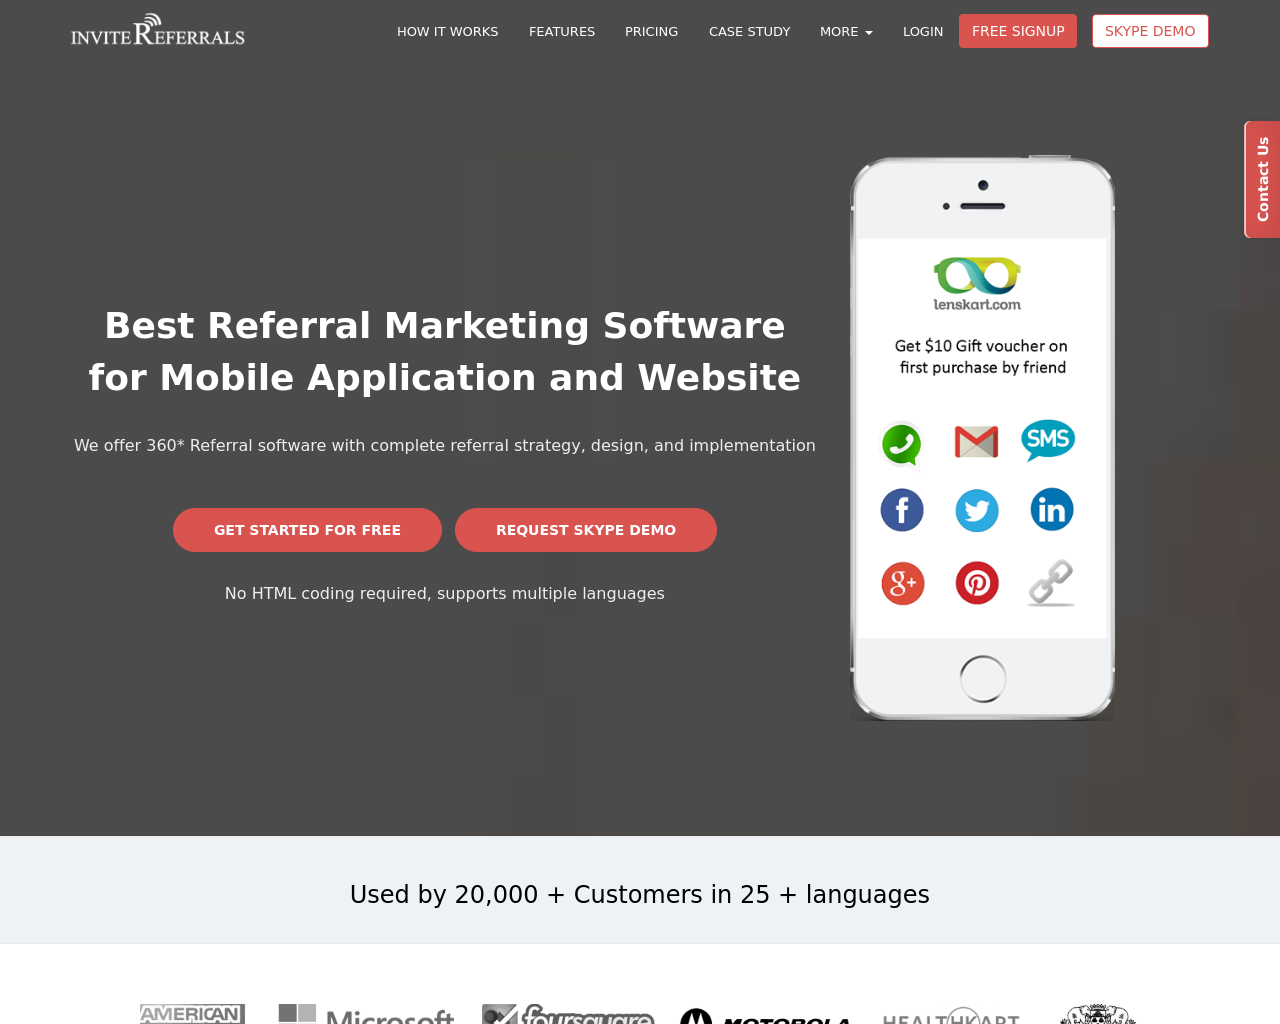 Invite-Referrals-Advertising-Reviews-Pricing